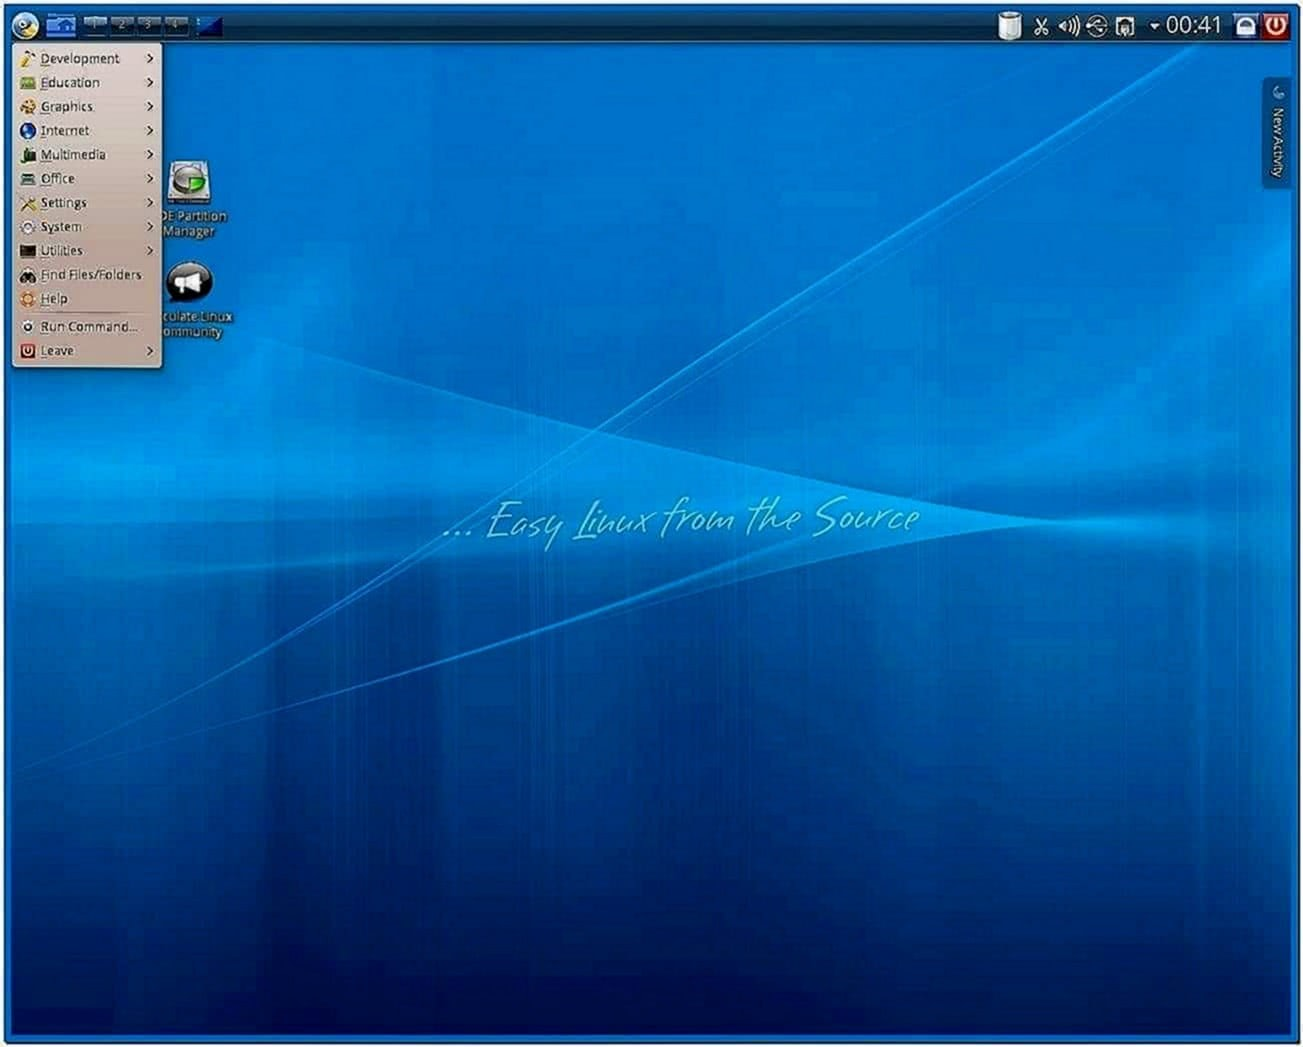 Gentoo XFCE Gnome Screensaver